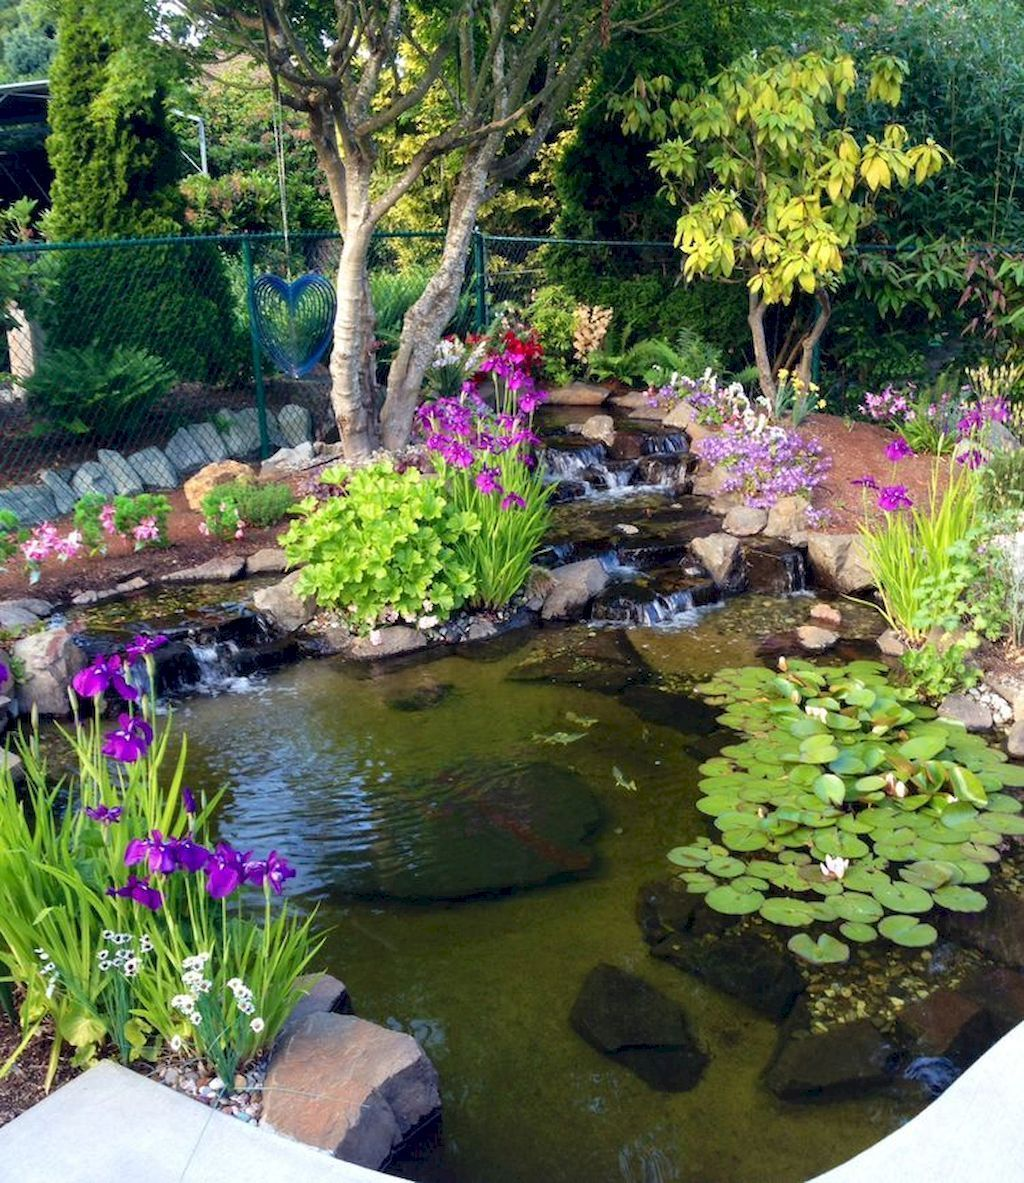 6 Reasons Why You Should Build a Pond